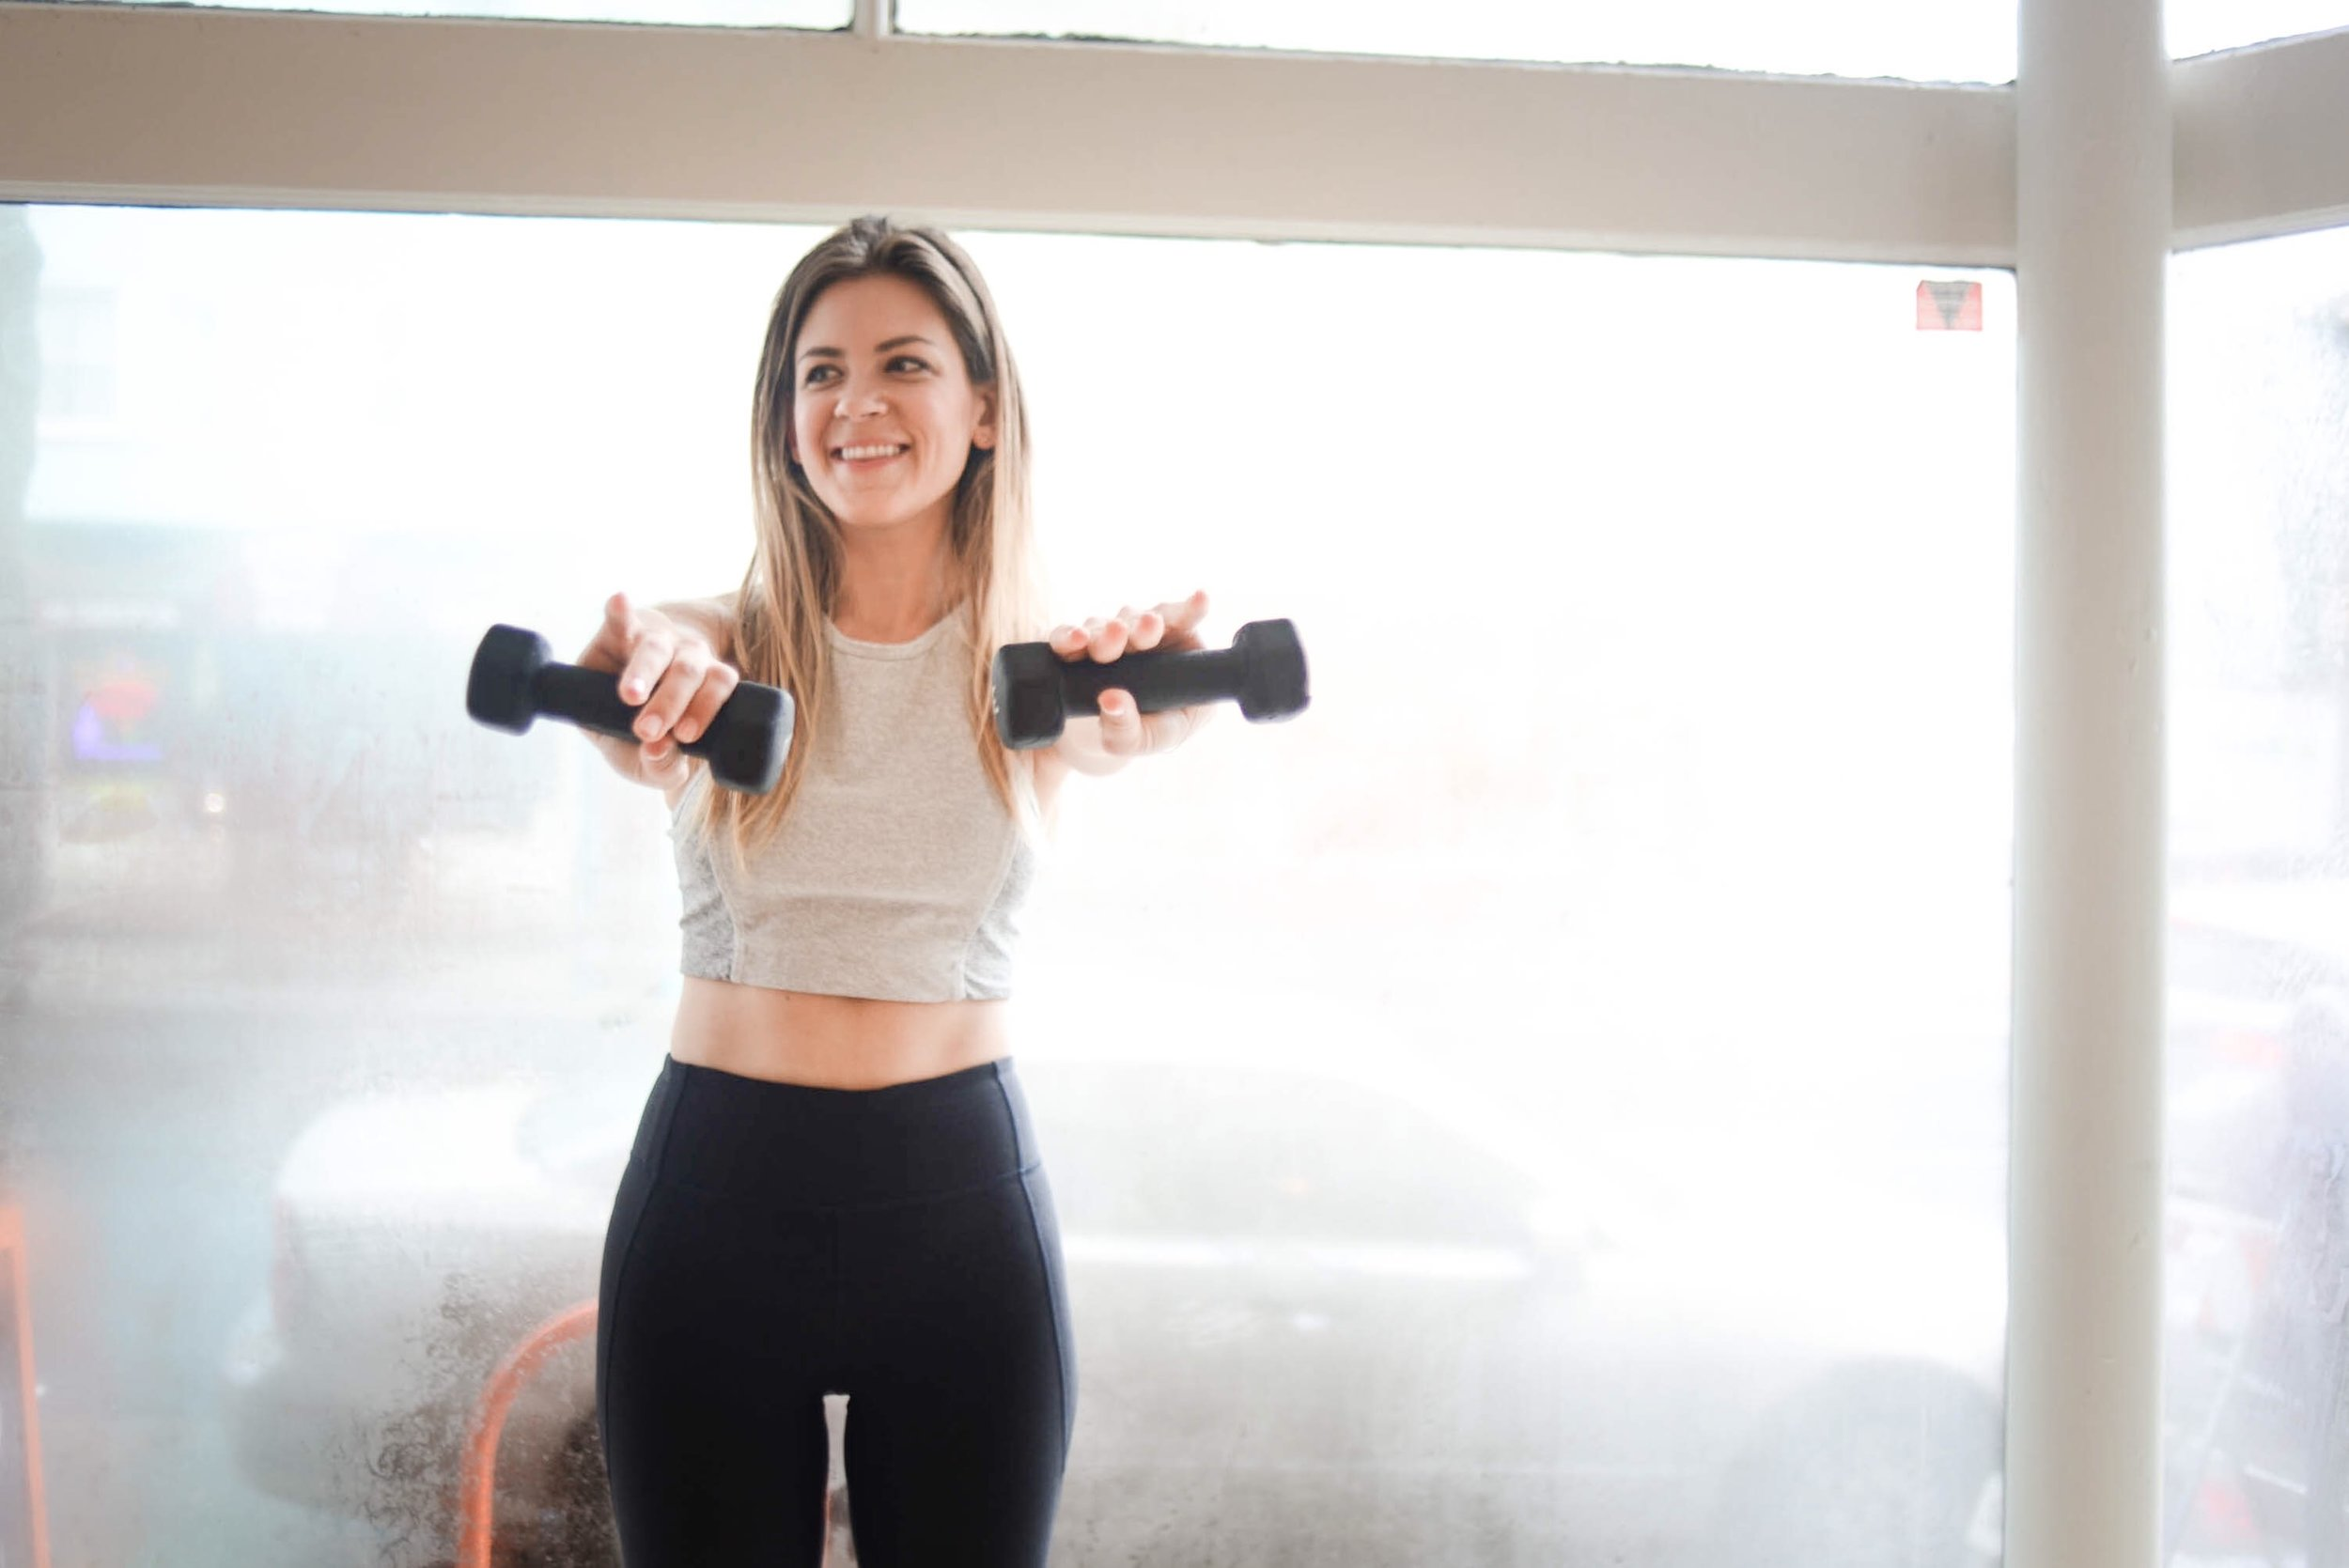 This photoshoot took place at my favorite Pilates studio in SF,  Core 40  .  Leggings  in Charcoal. Same top, similar colors   here  and   here  .